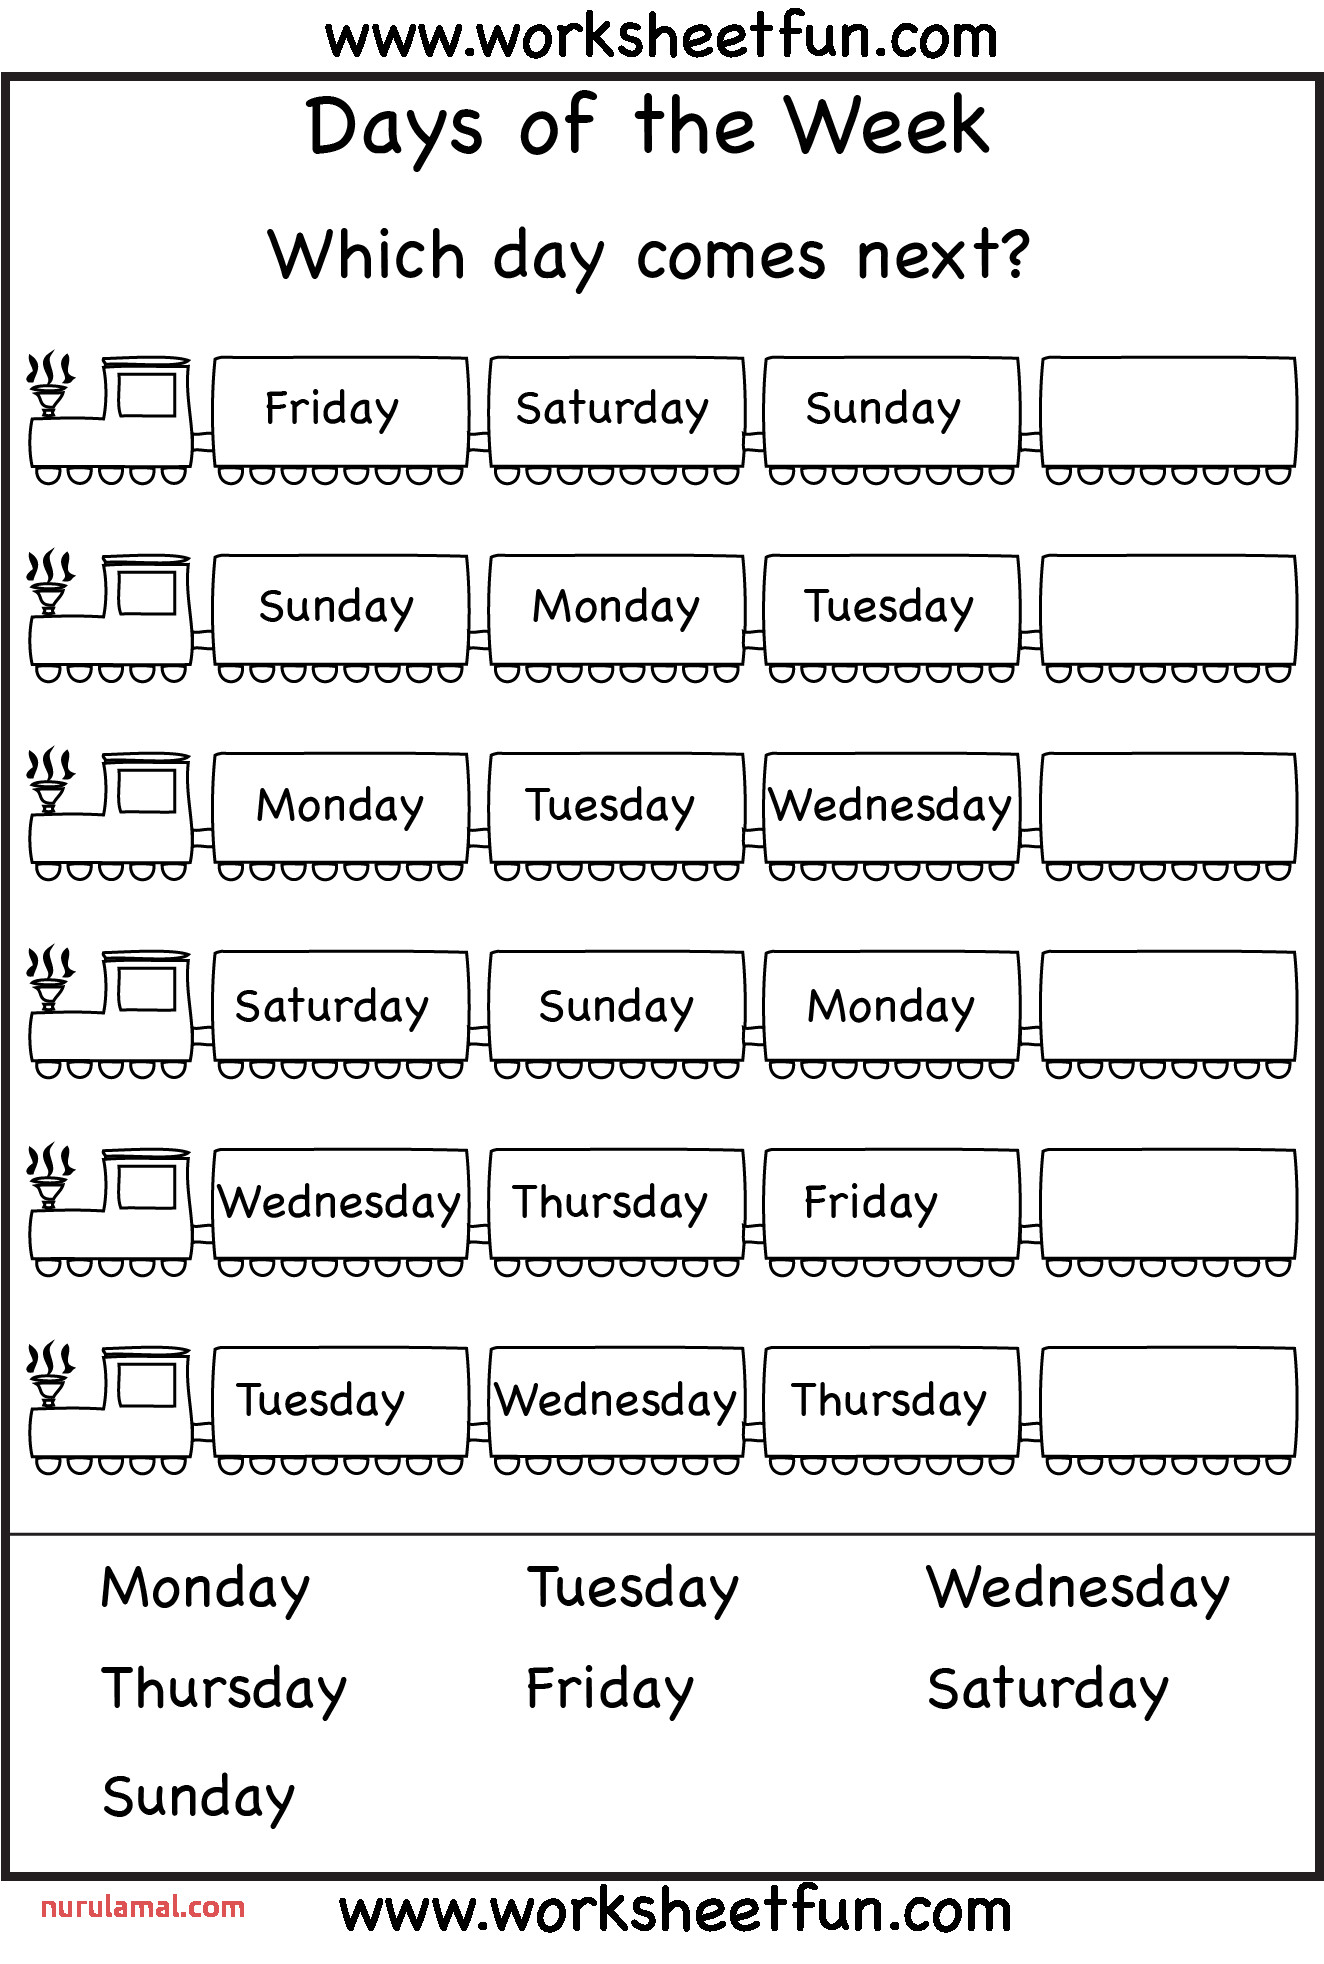 Days Of the Week Worksheet